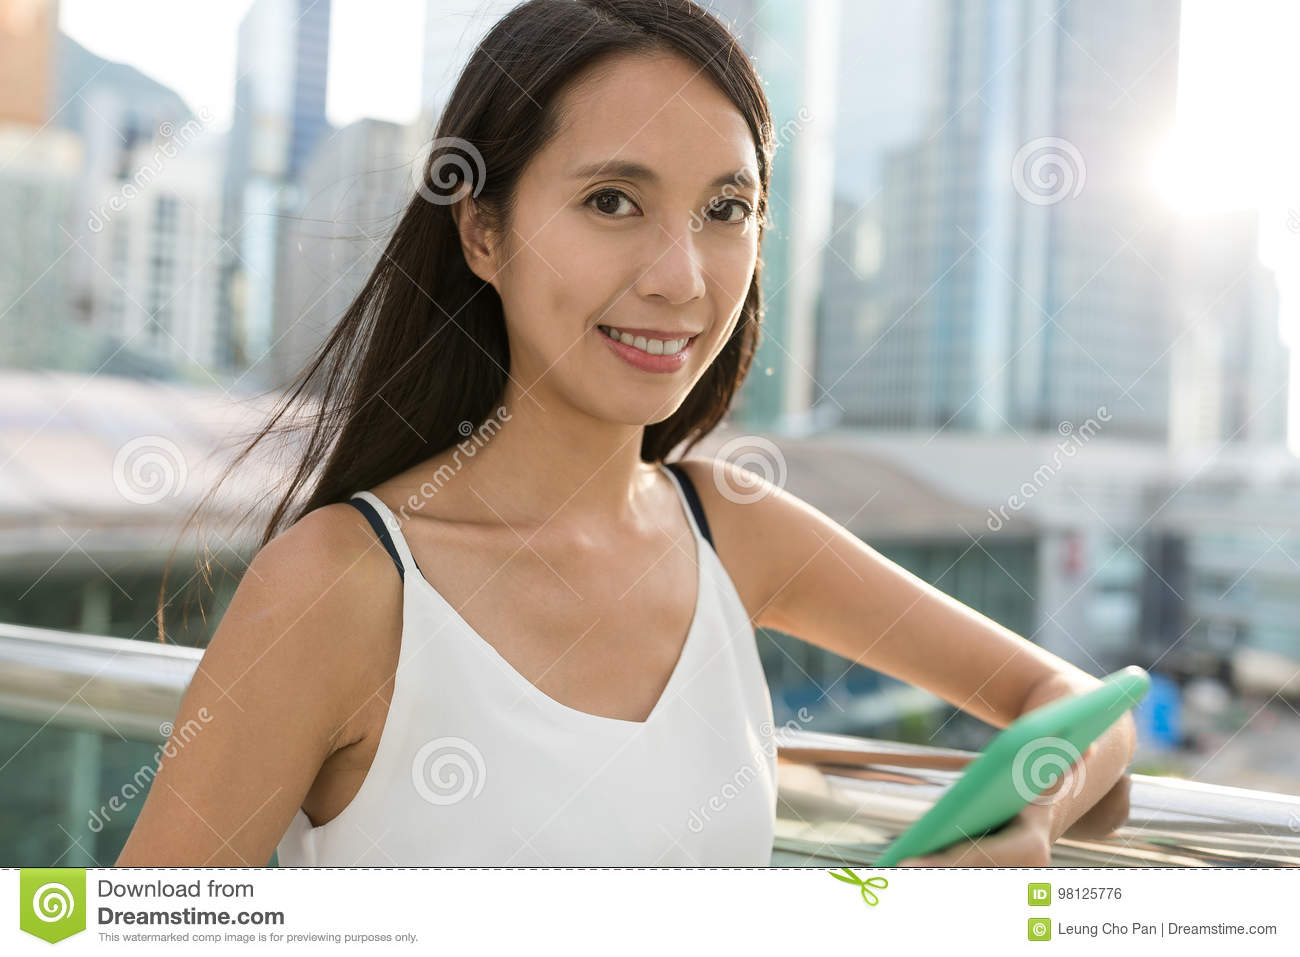 Young asian woman holding cellphone in the city